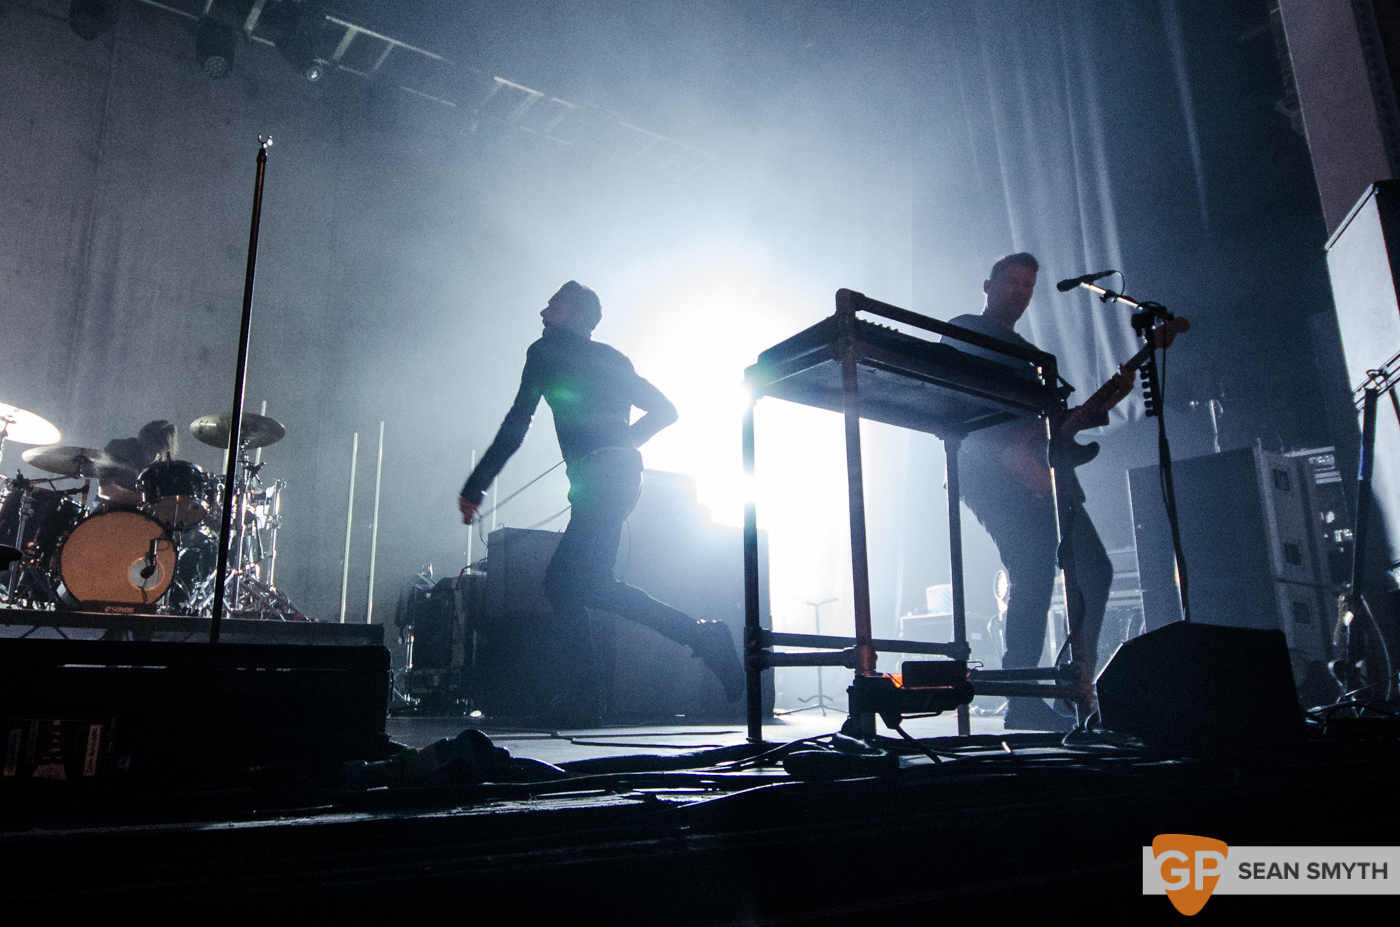 editors-at-the-olympia-theatre-by-sean-smyth-10-10-15-19-of-28_21467588874_o